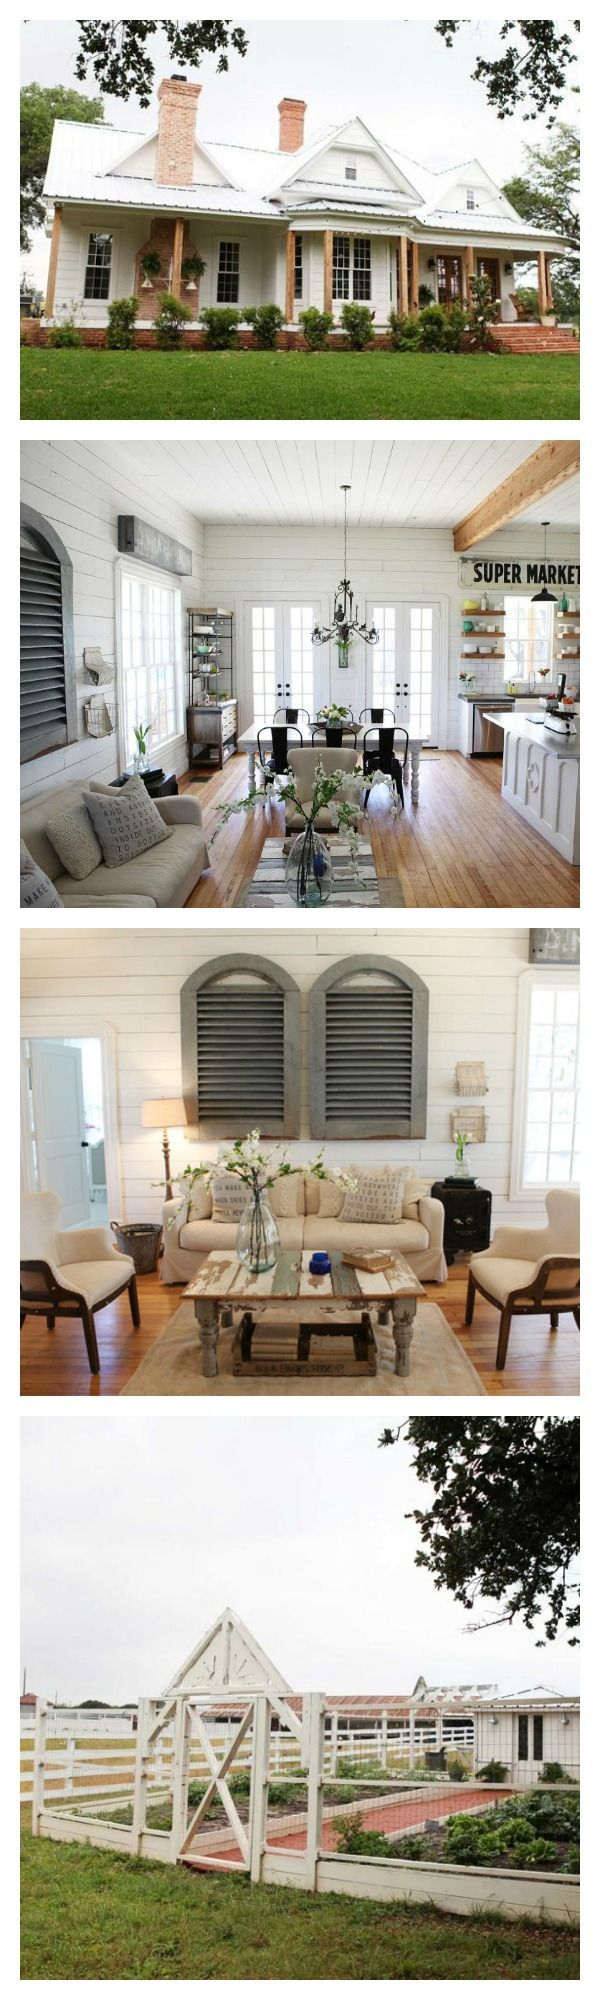 best home decor ideas and inspiration images on pinterest